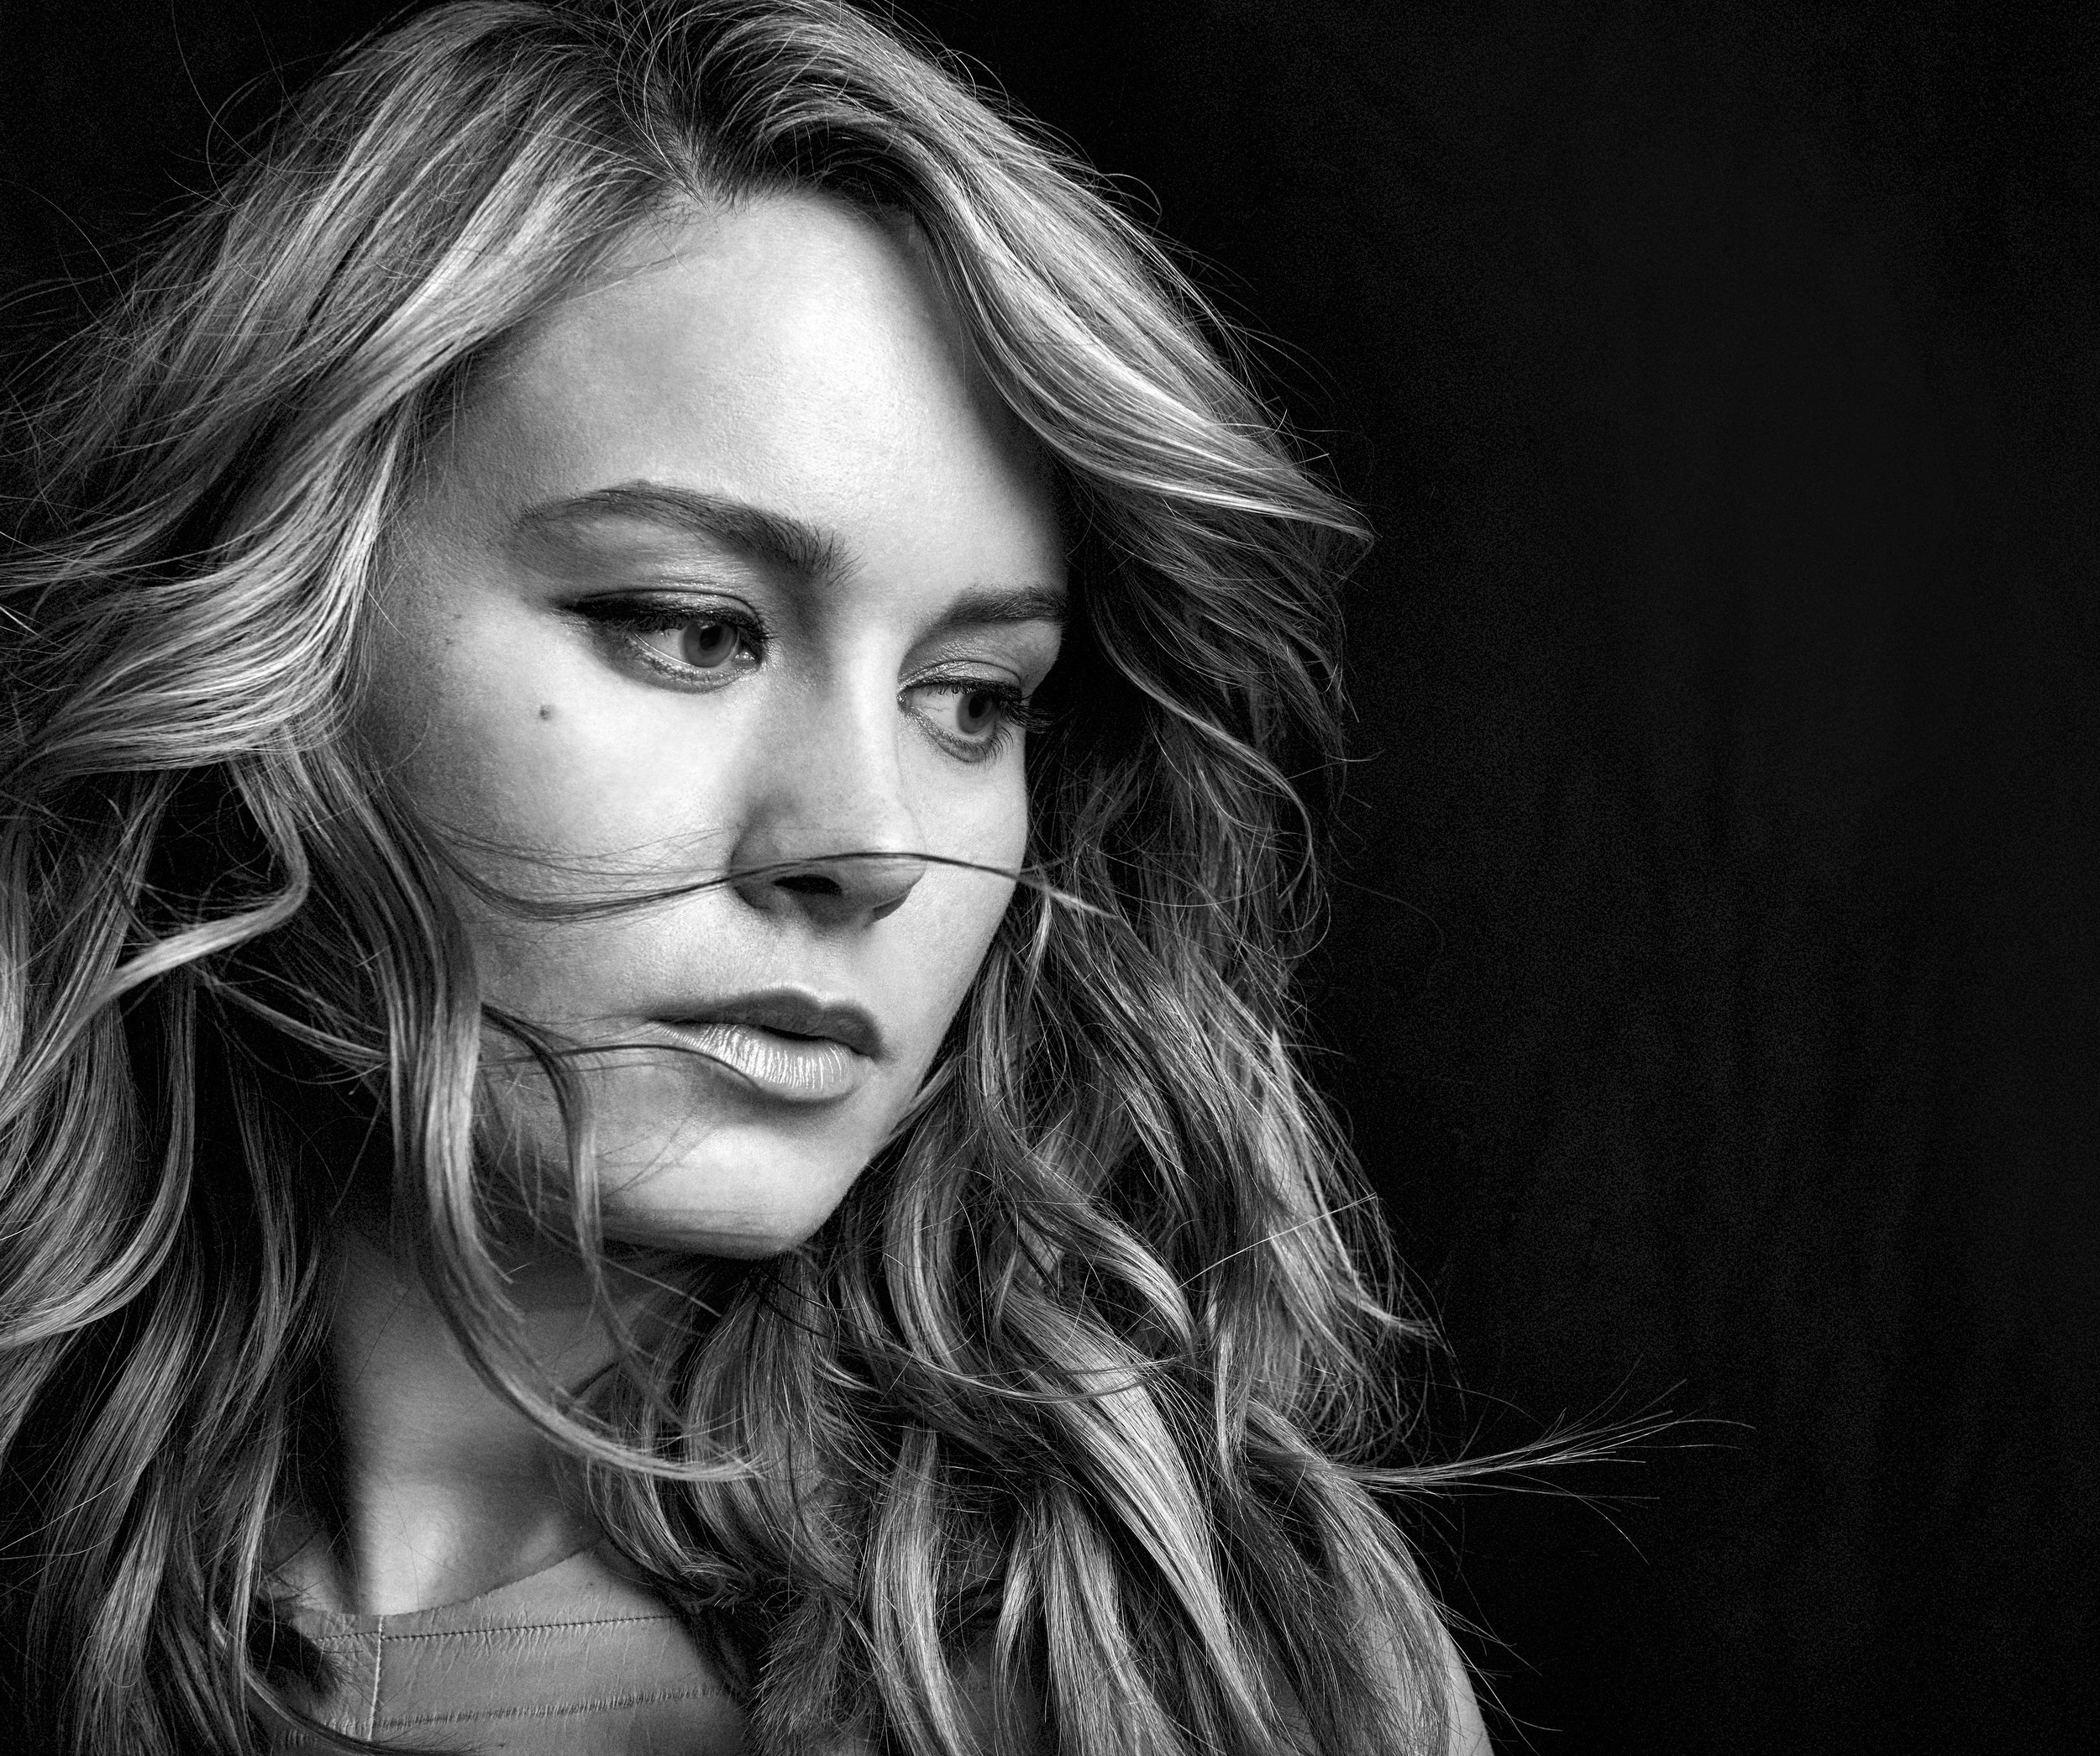 monochrome brie larson wallpaper 55323